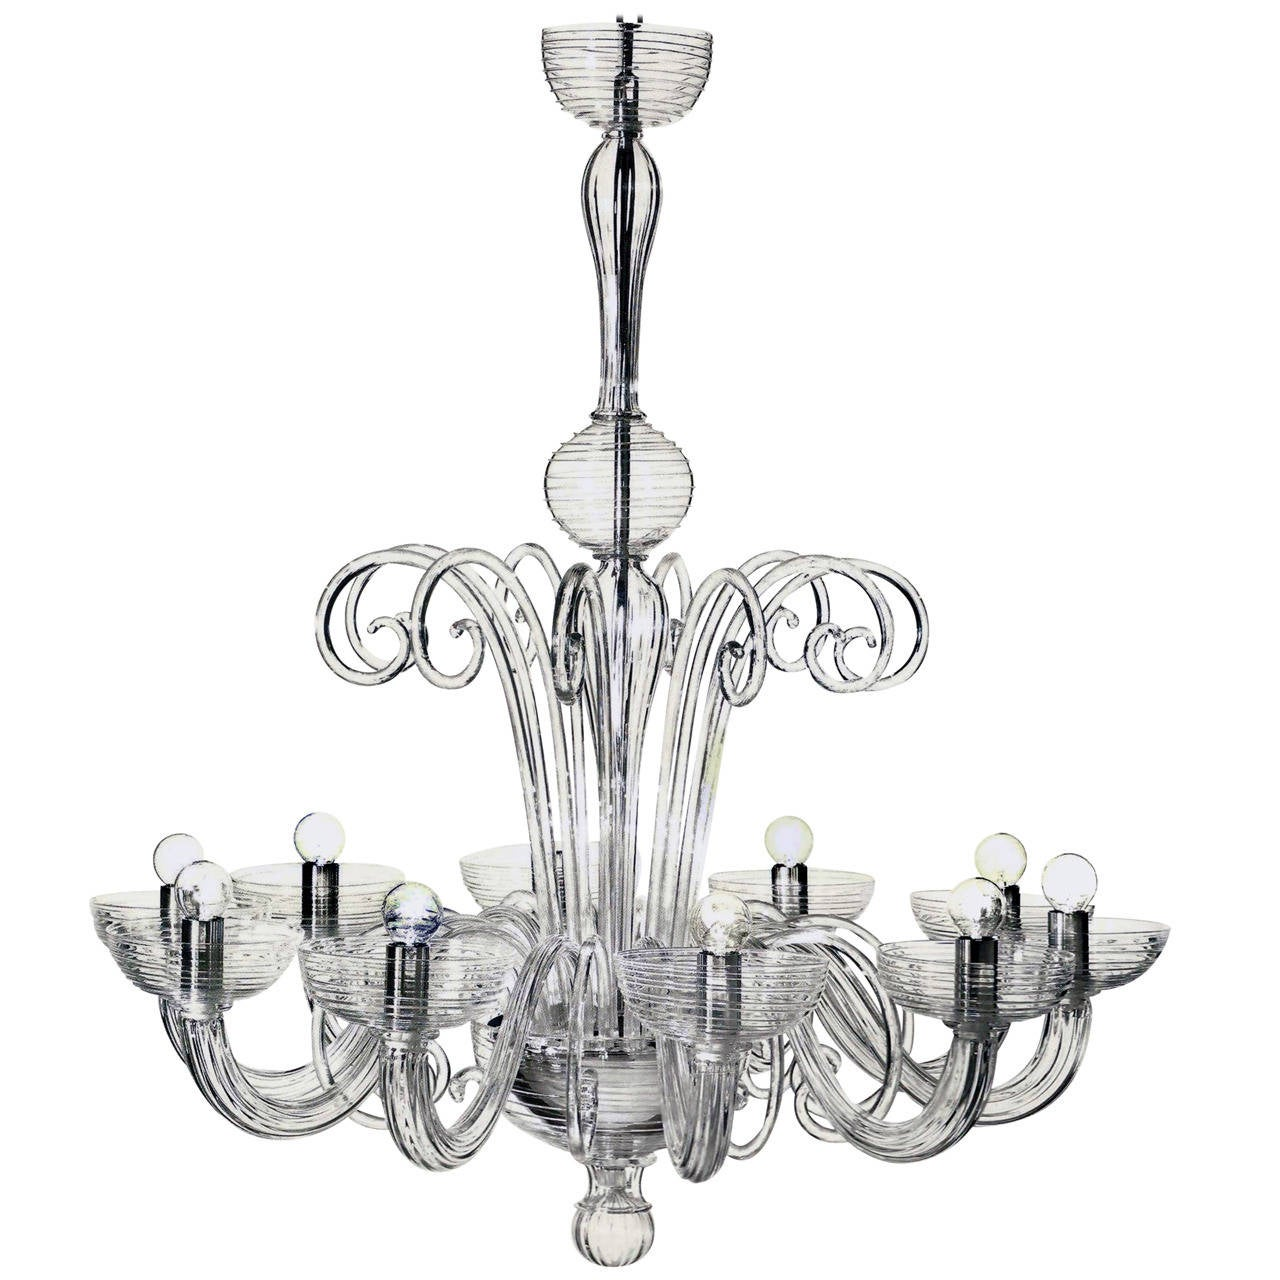 Two Italian Mid-Century Style Clear Murano / Venetian Glass Ten-Arm Chandeliers For Sale